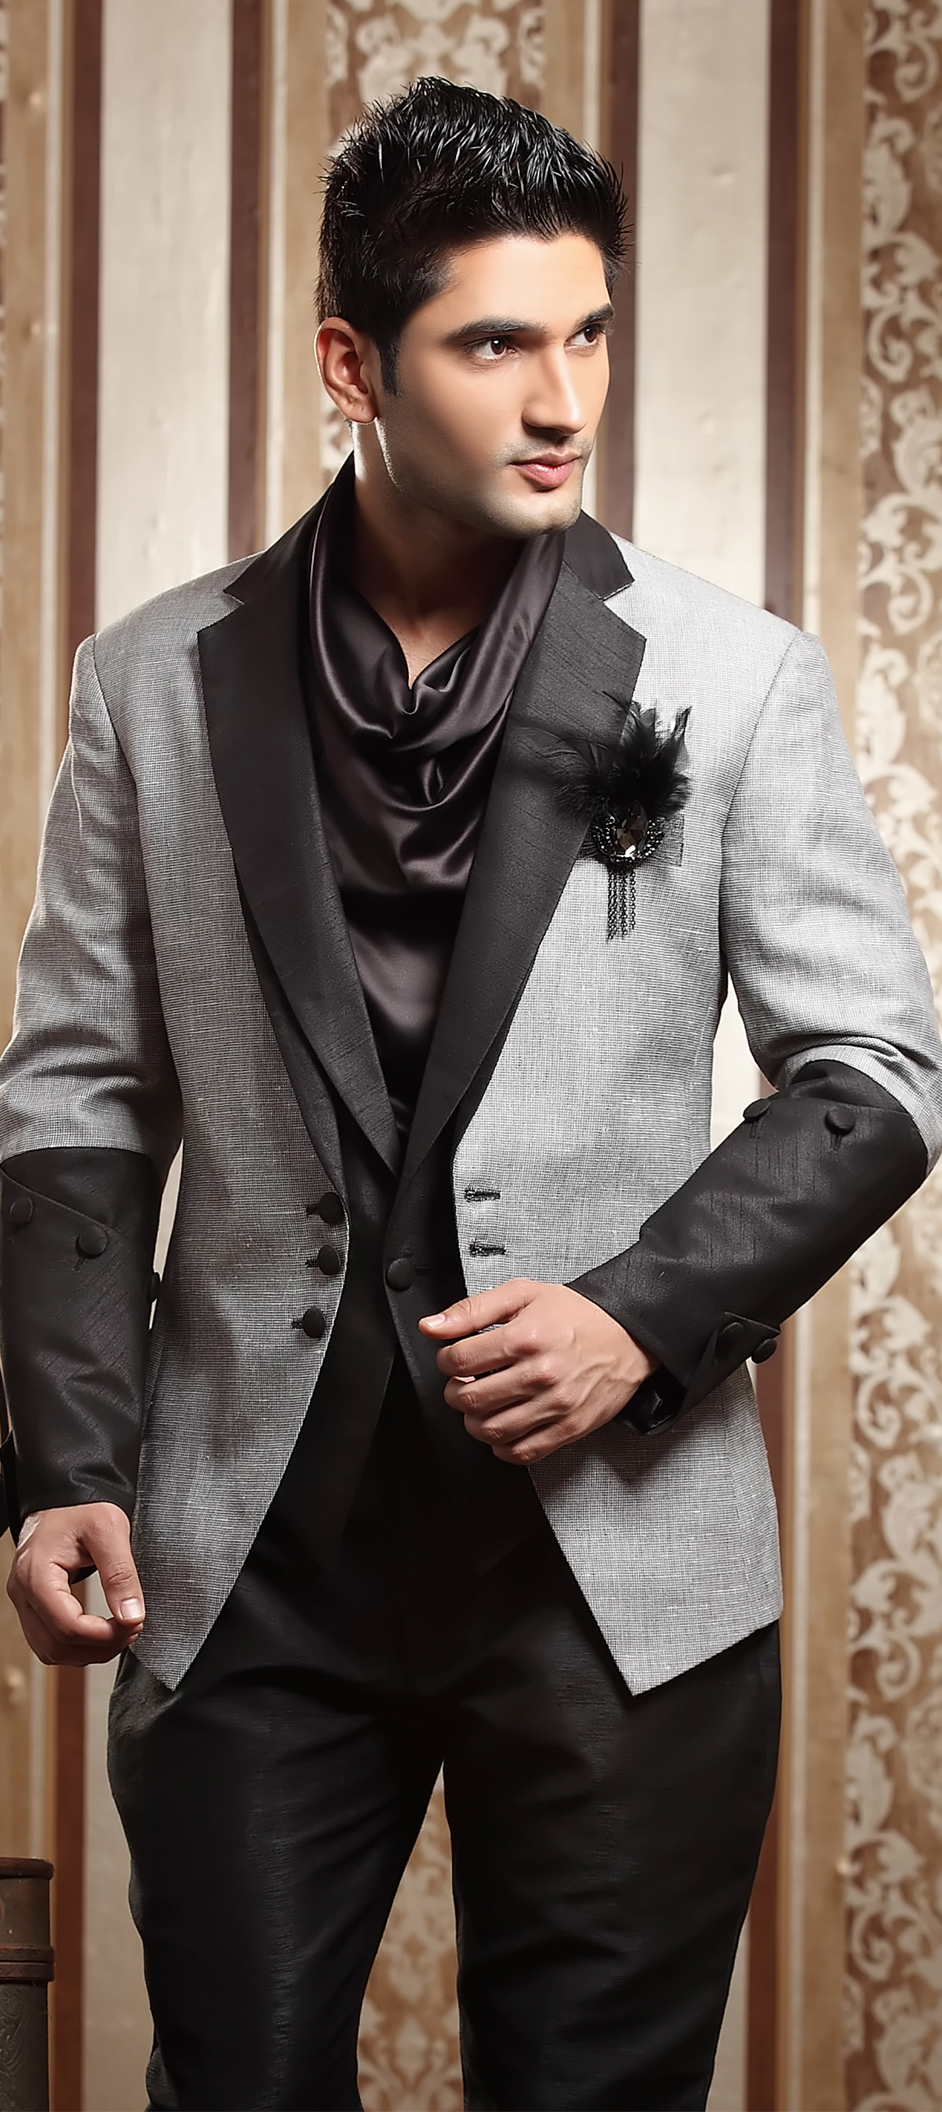 Luxury Indian Men Wedding Suits Elaboration - Wedding Dress Ideas ...